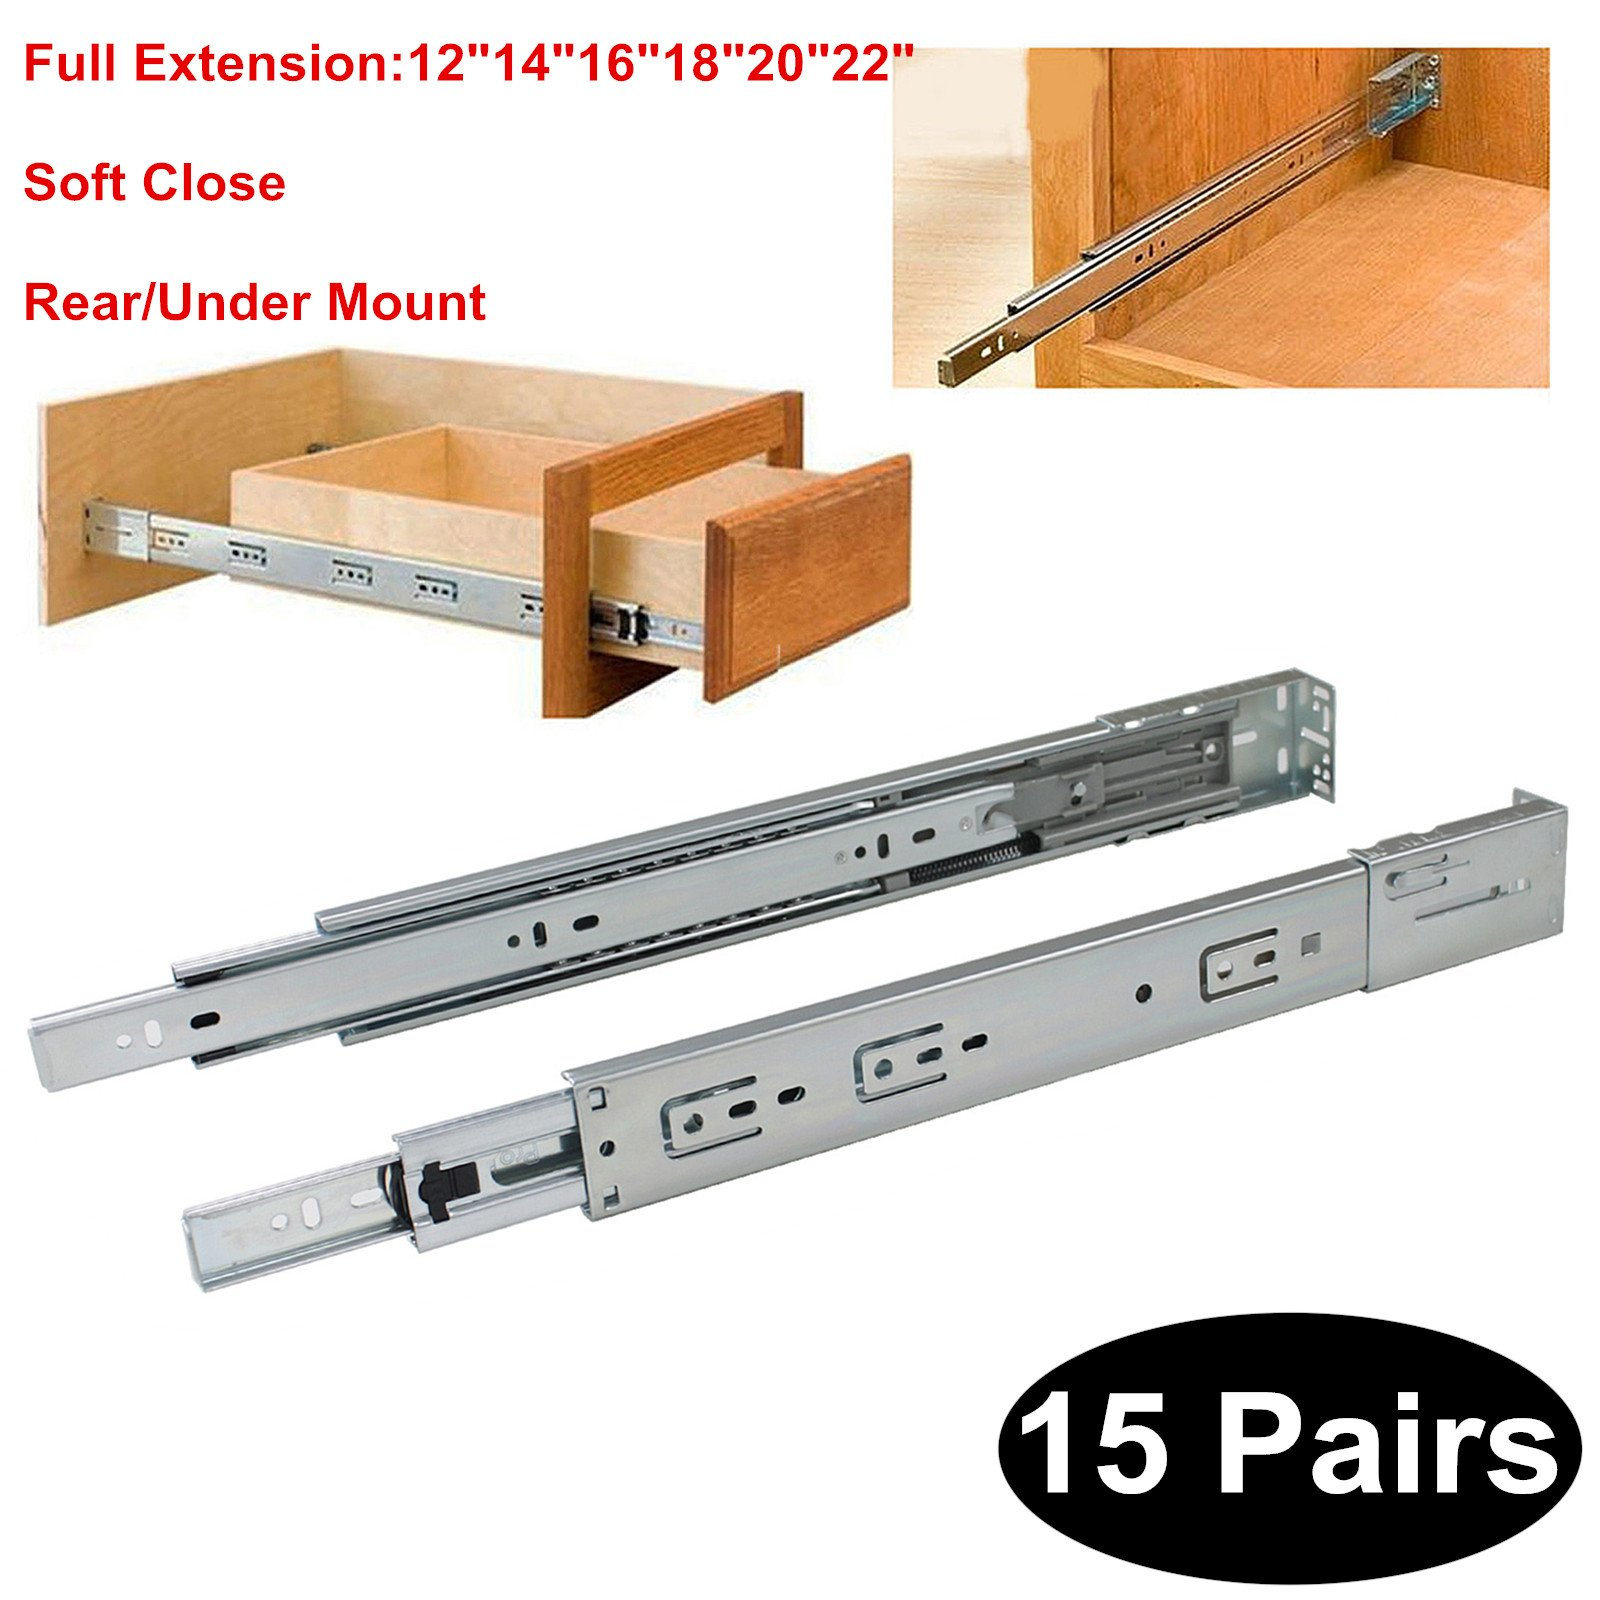 15 Pairs Soft Close Rear/Under Mount Drawer Slides Glides DHH32-22 inch Full Extension 3-Folds Ball Bearing;100-pound Capacity by Home Building Store